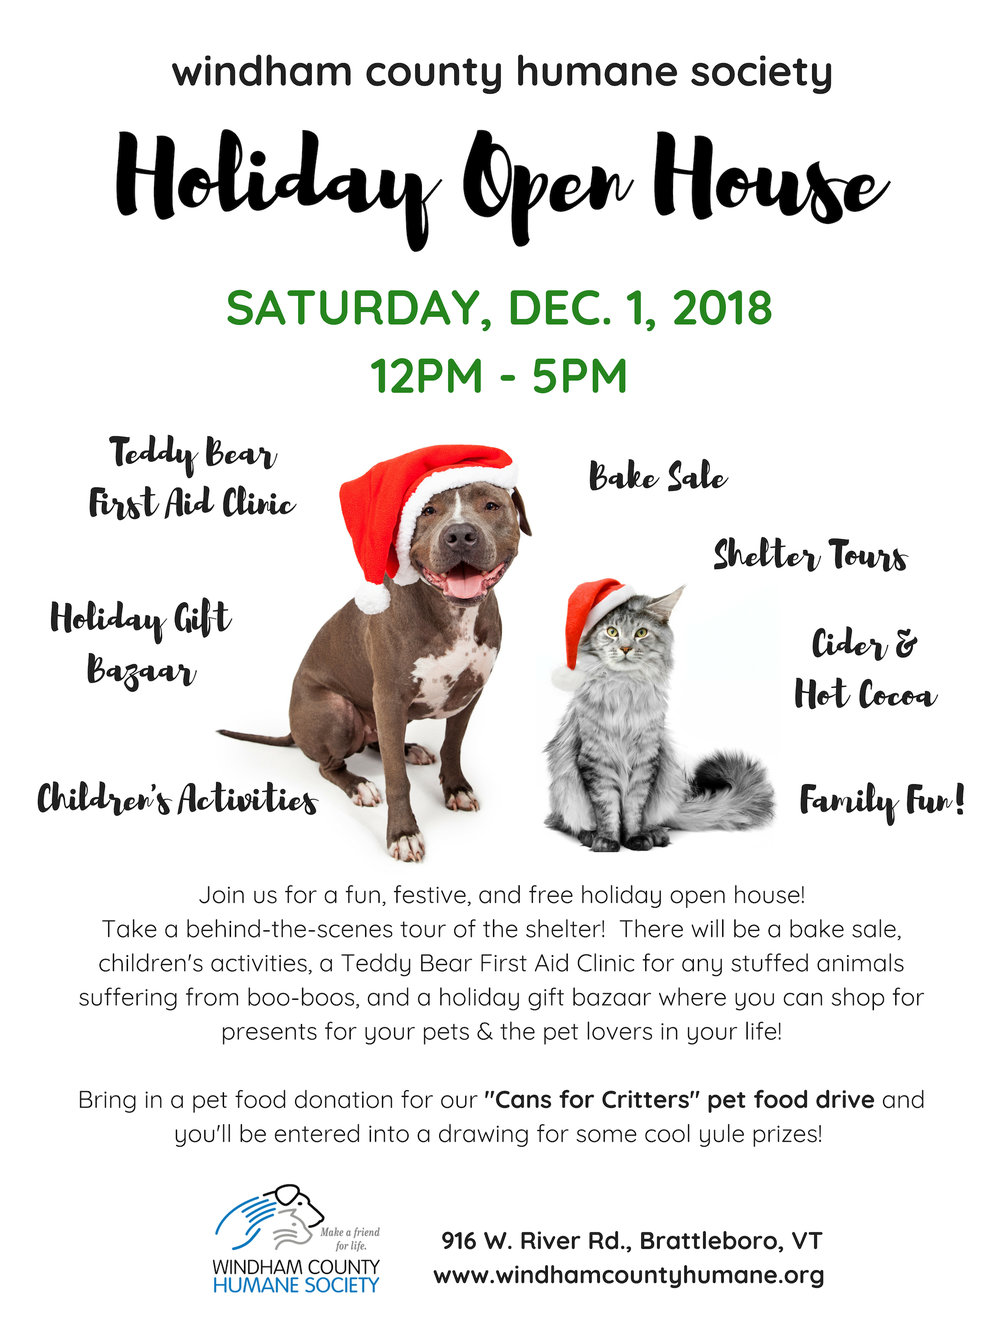 Holiday Open House poster revised 11.07.18.jpg